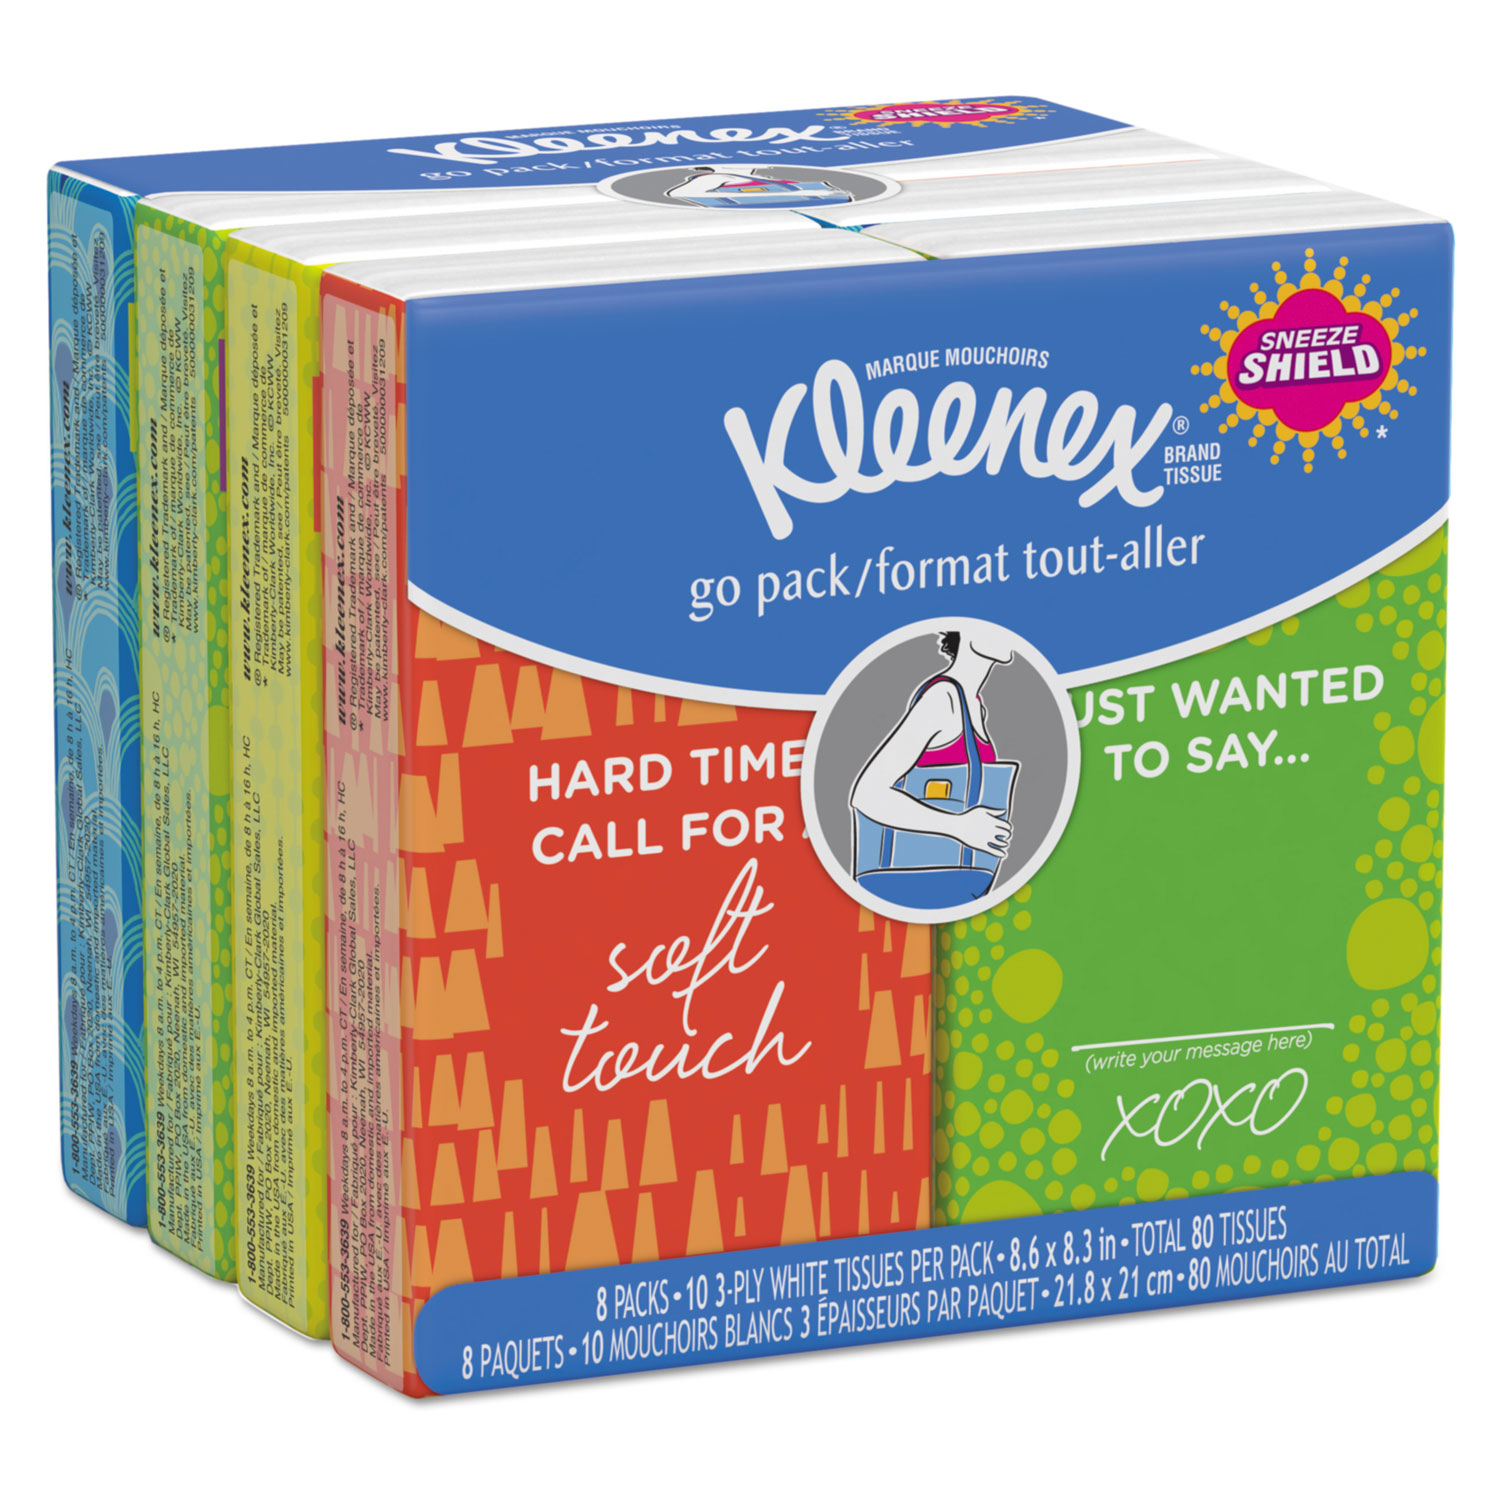 PAPER POCKET TISSUE Soft 3 Ply handbag tissues FREE DELIVERY 20 PACK